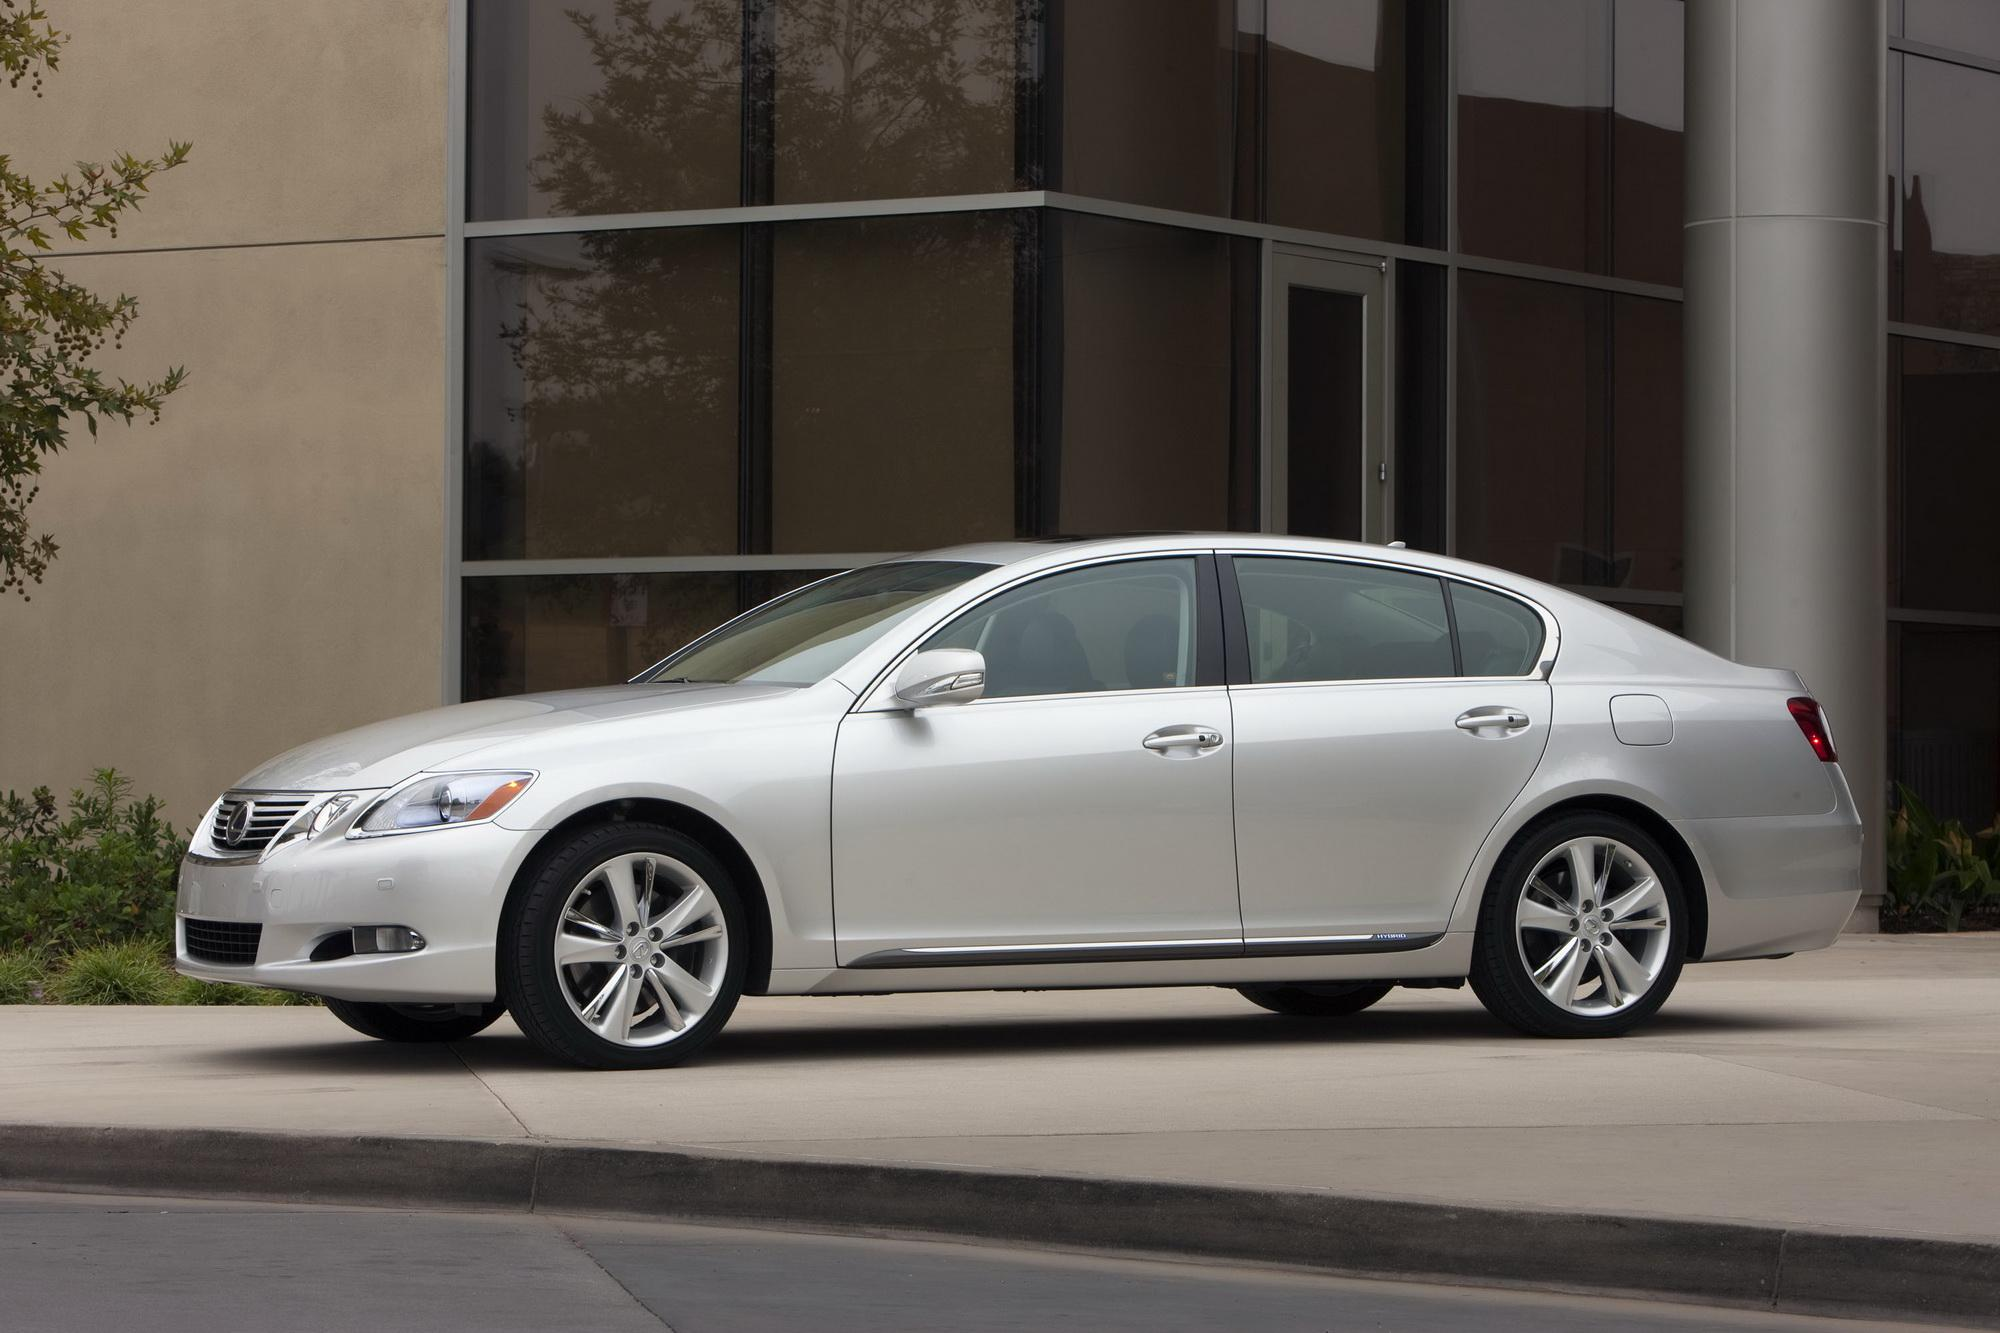 2010 lexus gs 450h review top speed. Black Bedroom Furniture Sets. Home Design Ideas